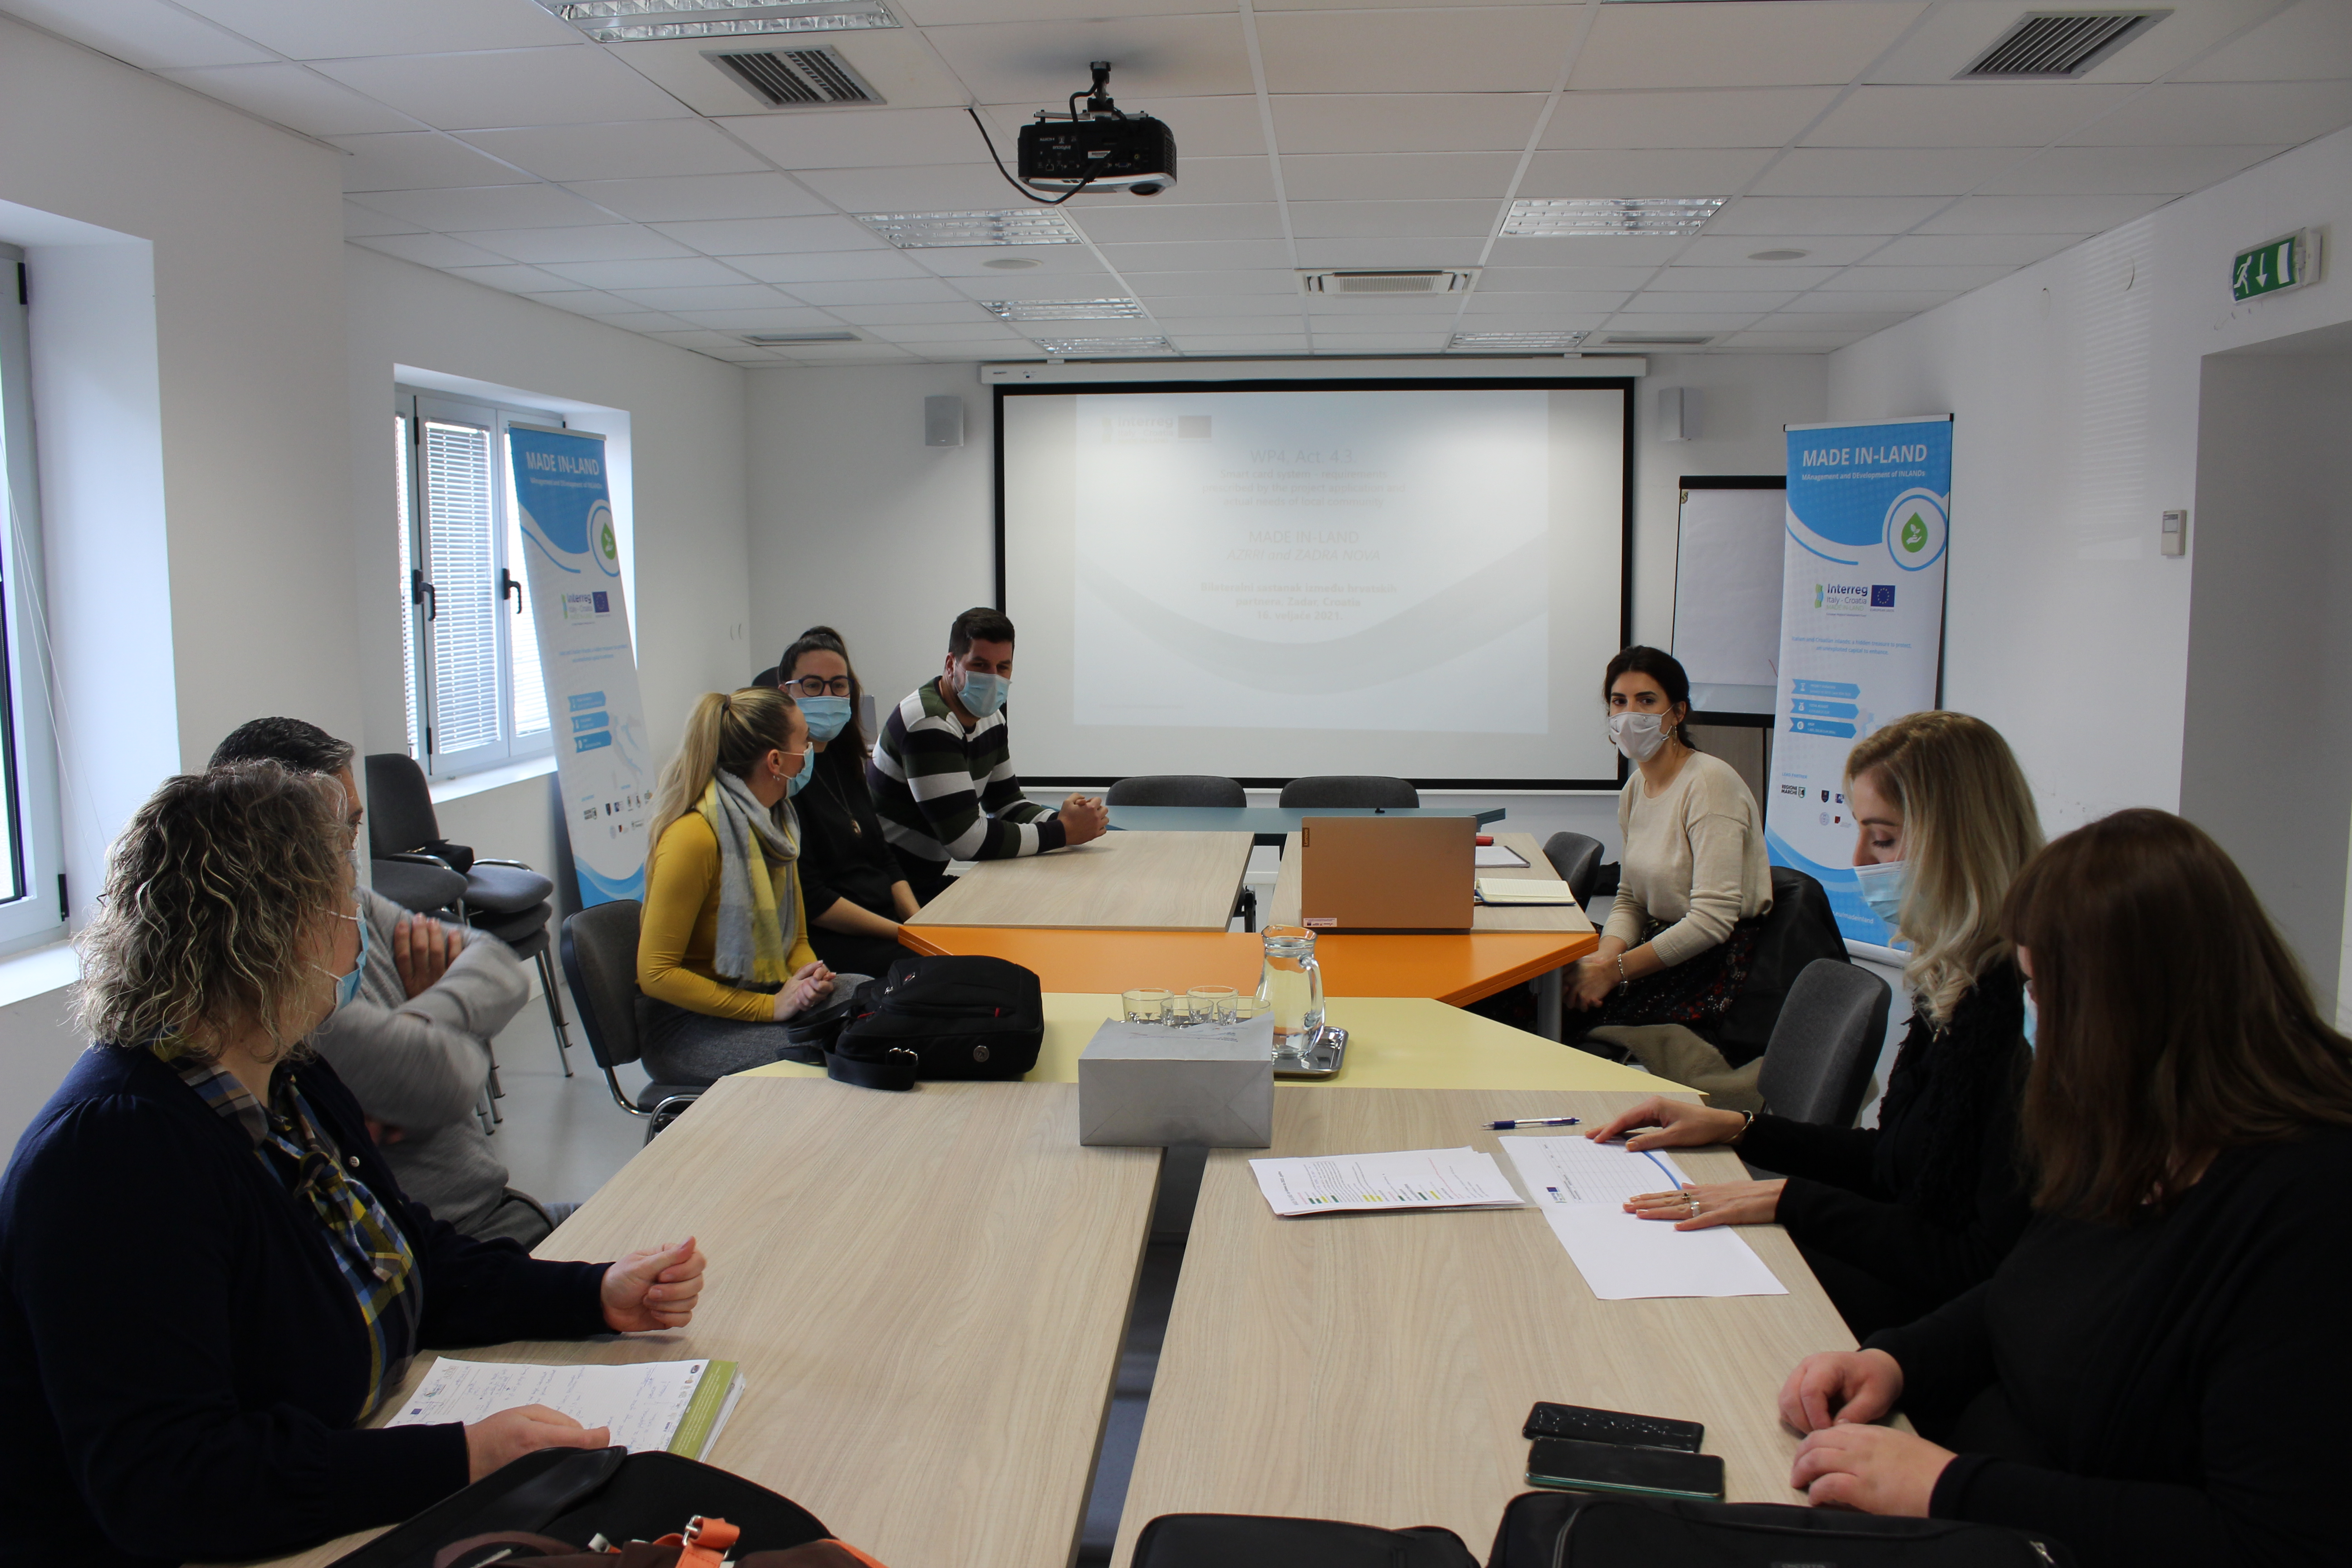 The project meeting was held on February 16, 2021 in Zadar between two project partners responsible for the implementation of the smart card system.